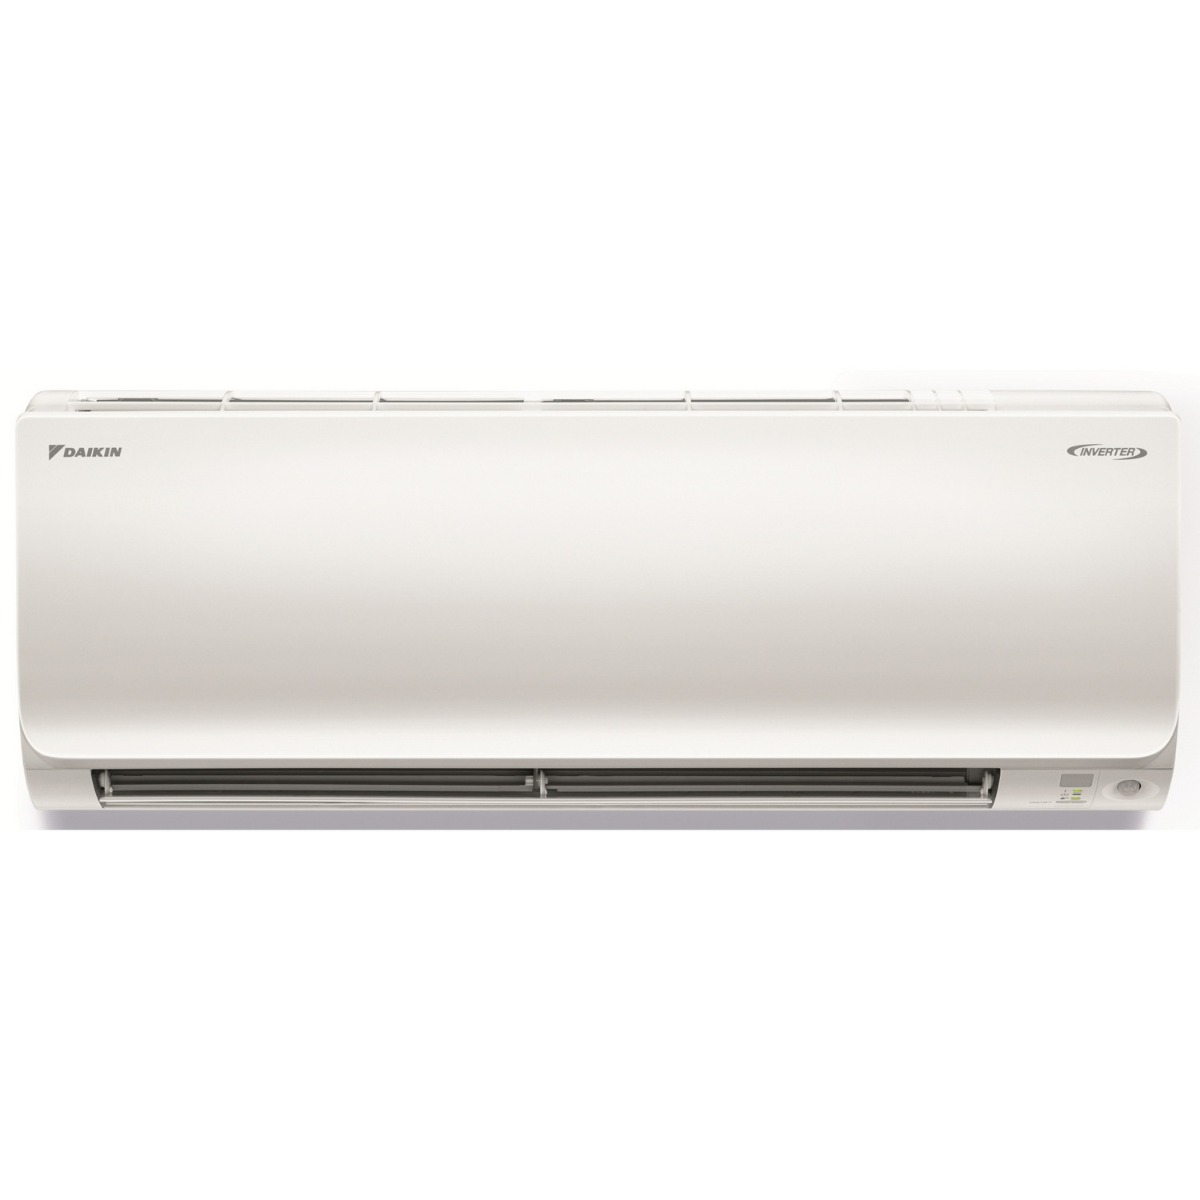 Daikin Air Conditioner (8,500 BTU, Inverter) +Pipe